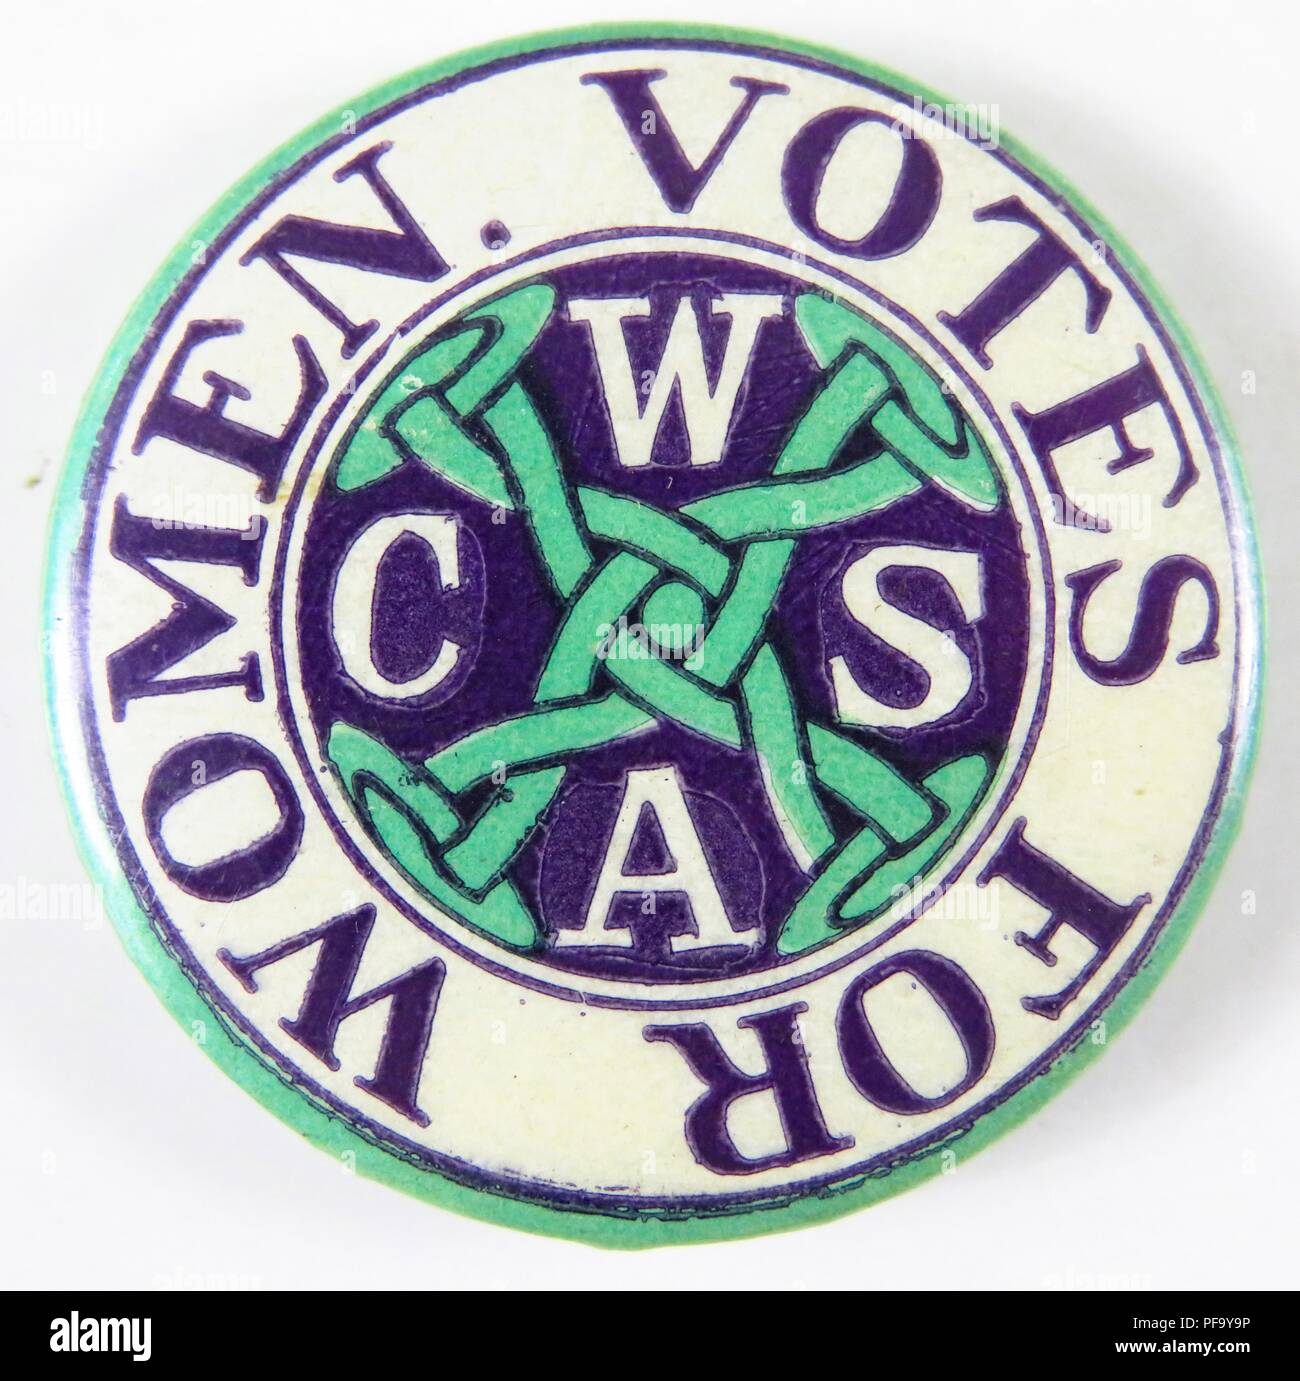 Purple, green and white, suffrage pin with the Connecticut Woman Suffrage Association's acronym (CWSA) separated by a chain-link design at the center, and with the words 'Votes for Women' circling the outer rim, issued by the Connecticut Woman Suffrage Association, for the American market, 1910. () - Stock Image